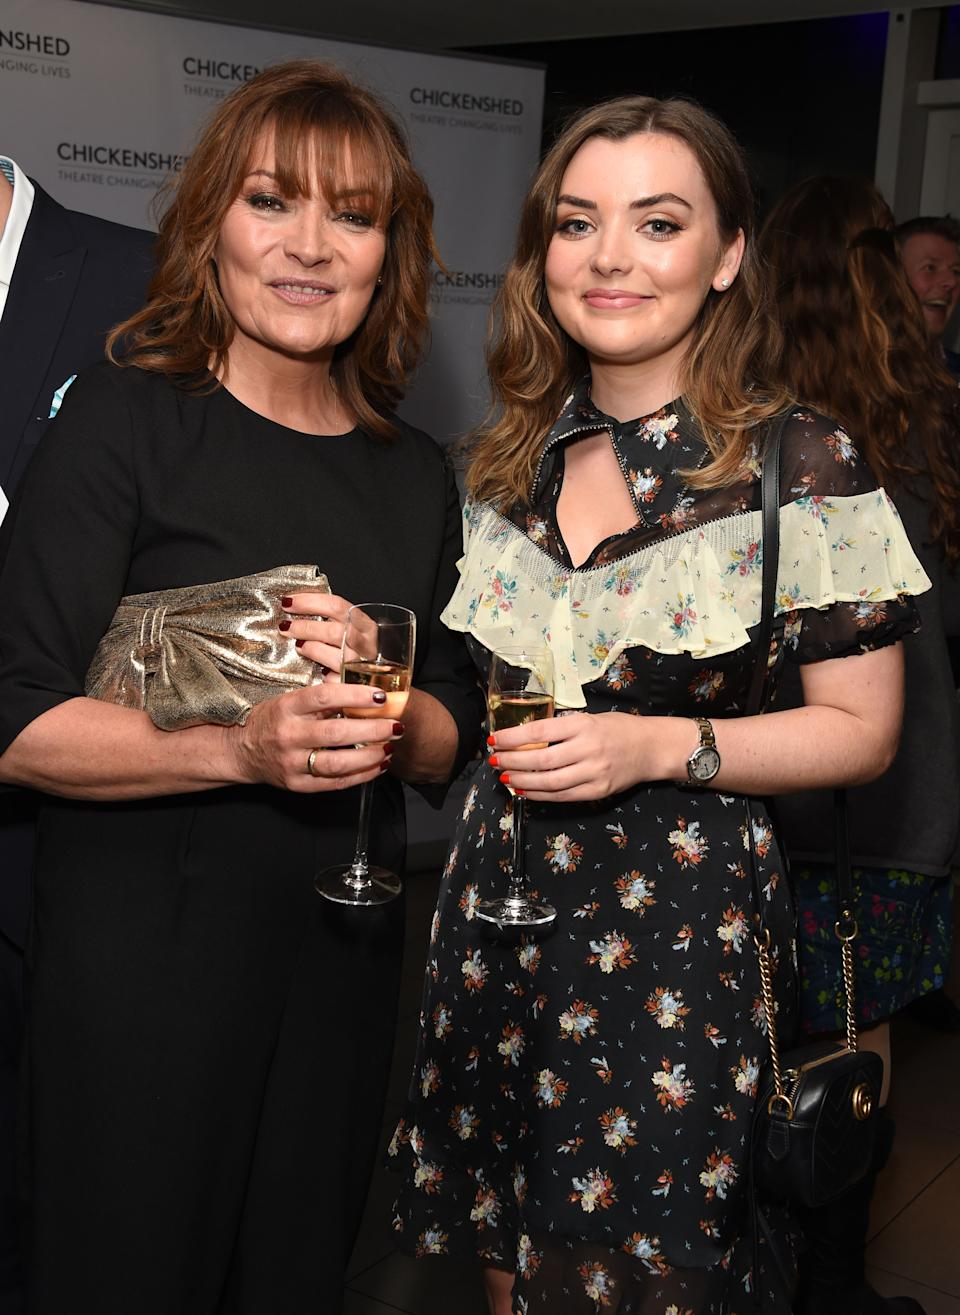 LONDON, ENGLAND - APRIL 17:  Lorraine Kelly and Rosie Smith attend a drinks reception ahead of 'An Evening With Chickenshed' charity performance at ITV Studios on April 17, 2018 in London, England.  (Photo by David M. Benett/Dave Benett/Getty Images)